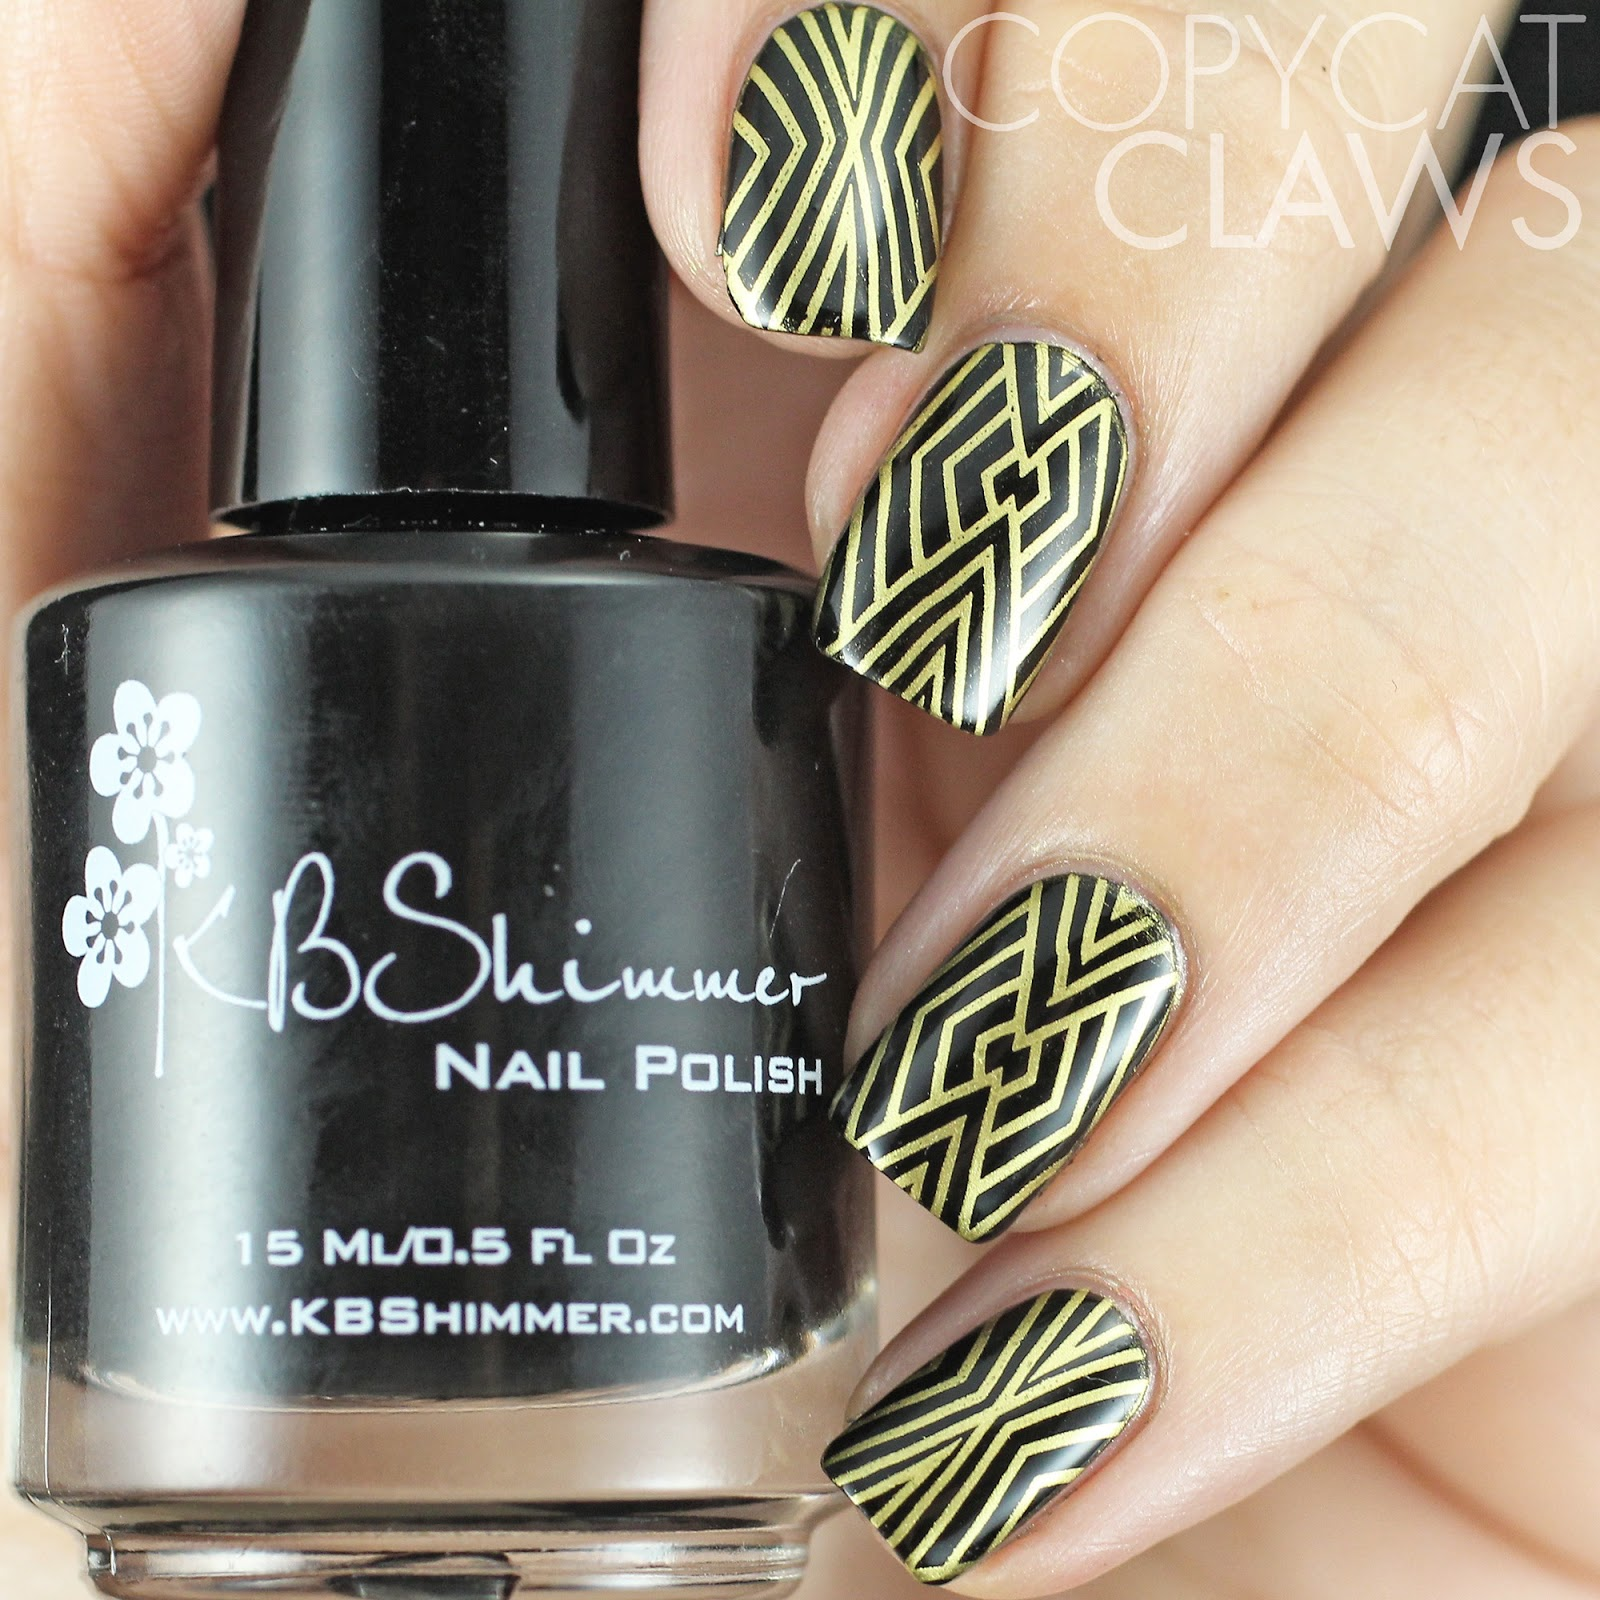 Copycat Claws: It Girl Nail Art Stamping